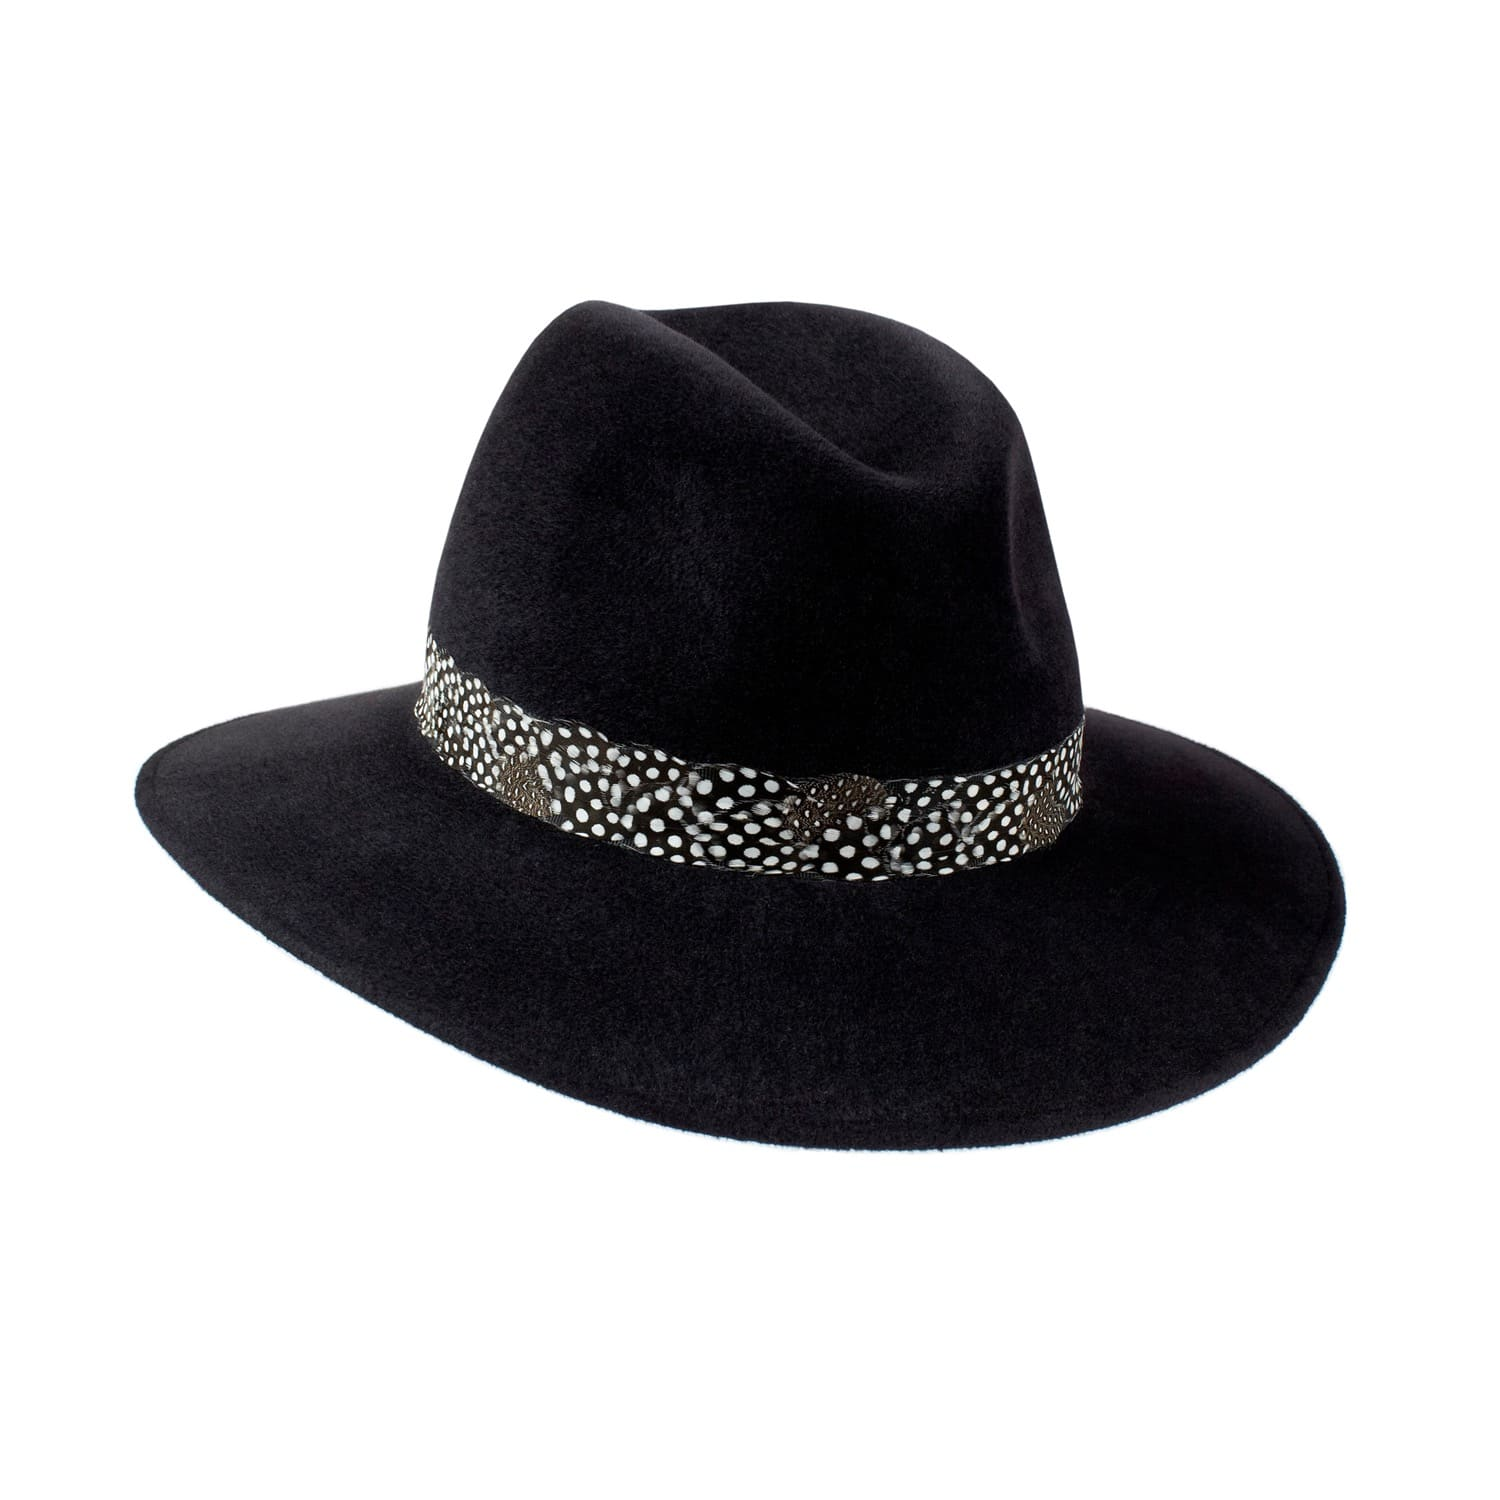 Willow Fedora Black - Feather Band image 87d83d506a7